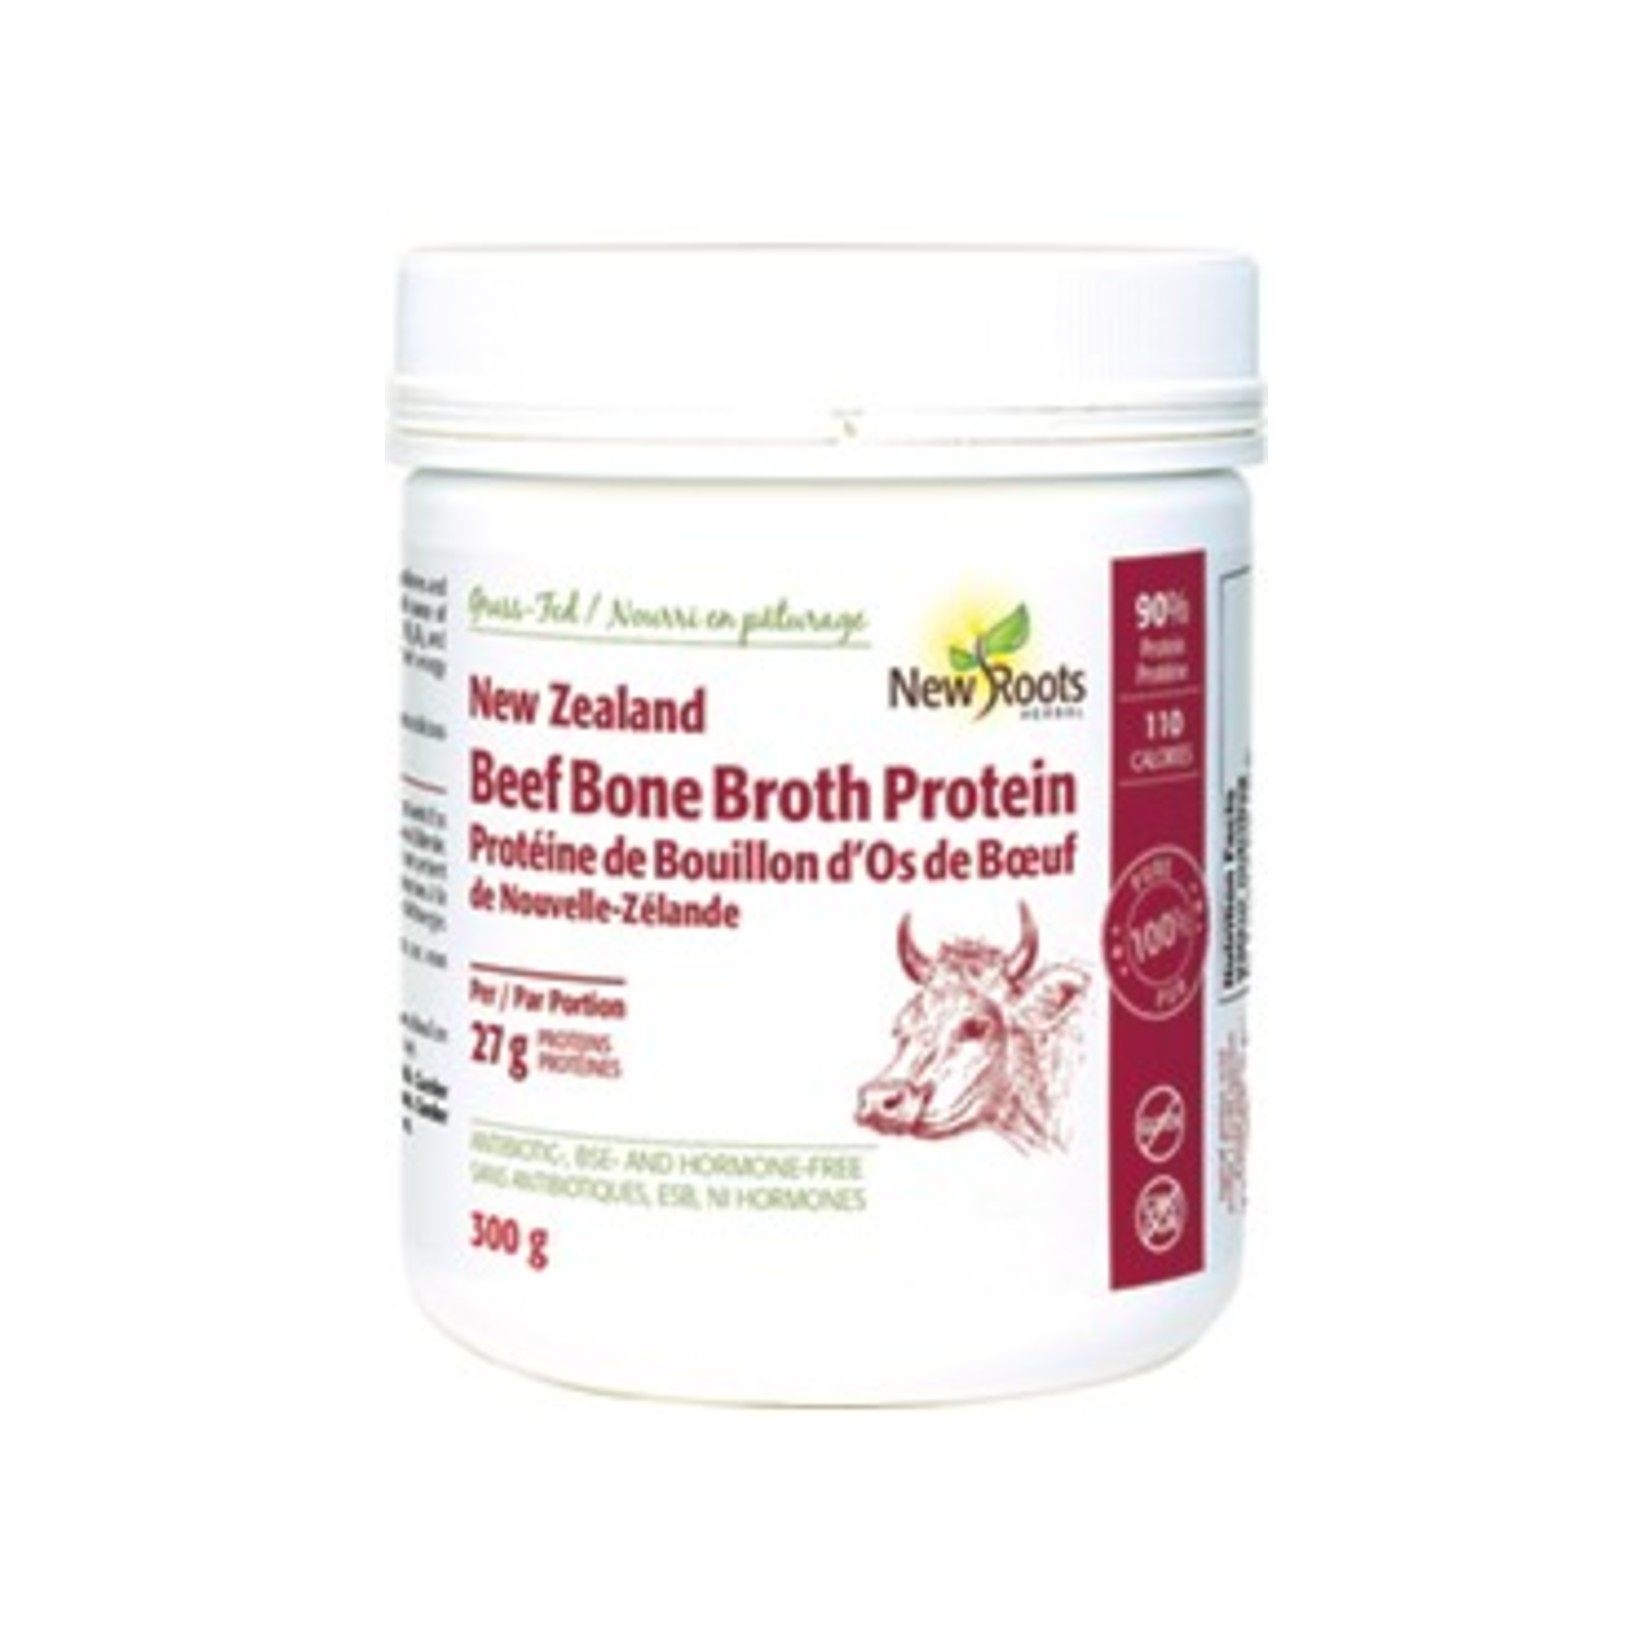 New Roots New Roots New Zealand Beef Bone Broth Protein 300g